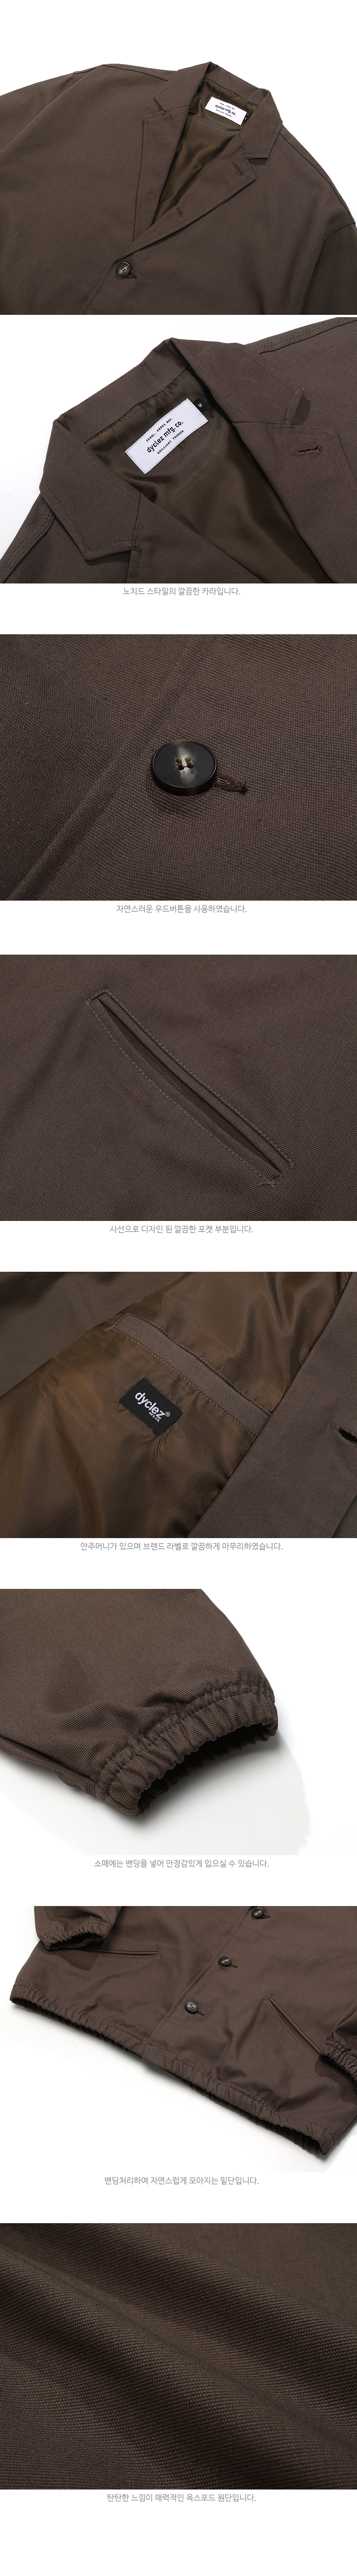 KHOT5111_detail_brown_02.jpg